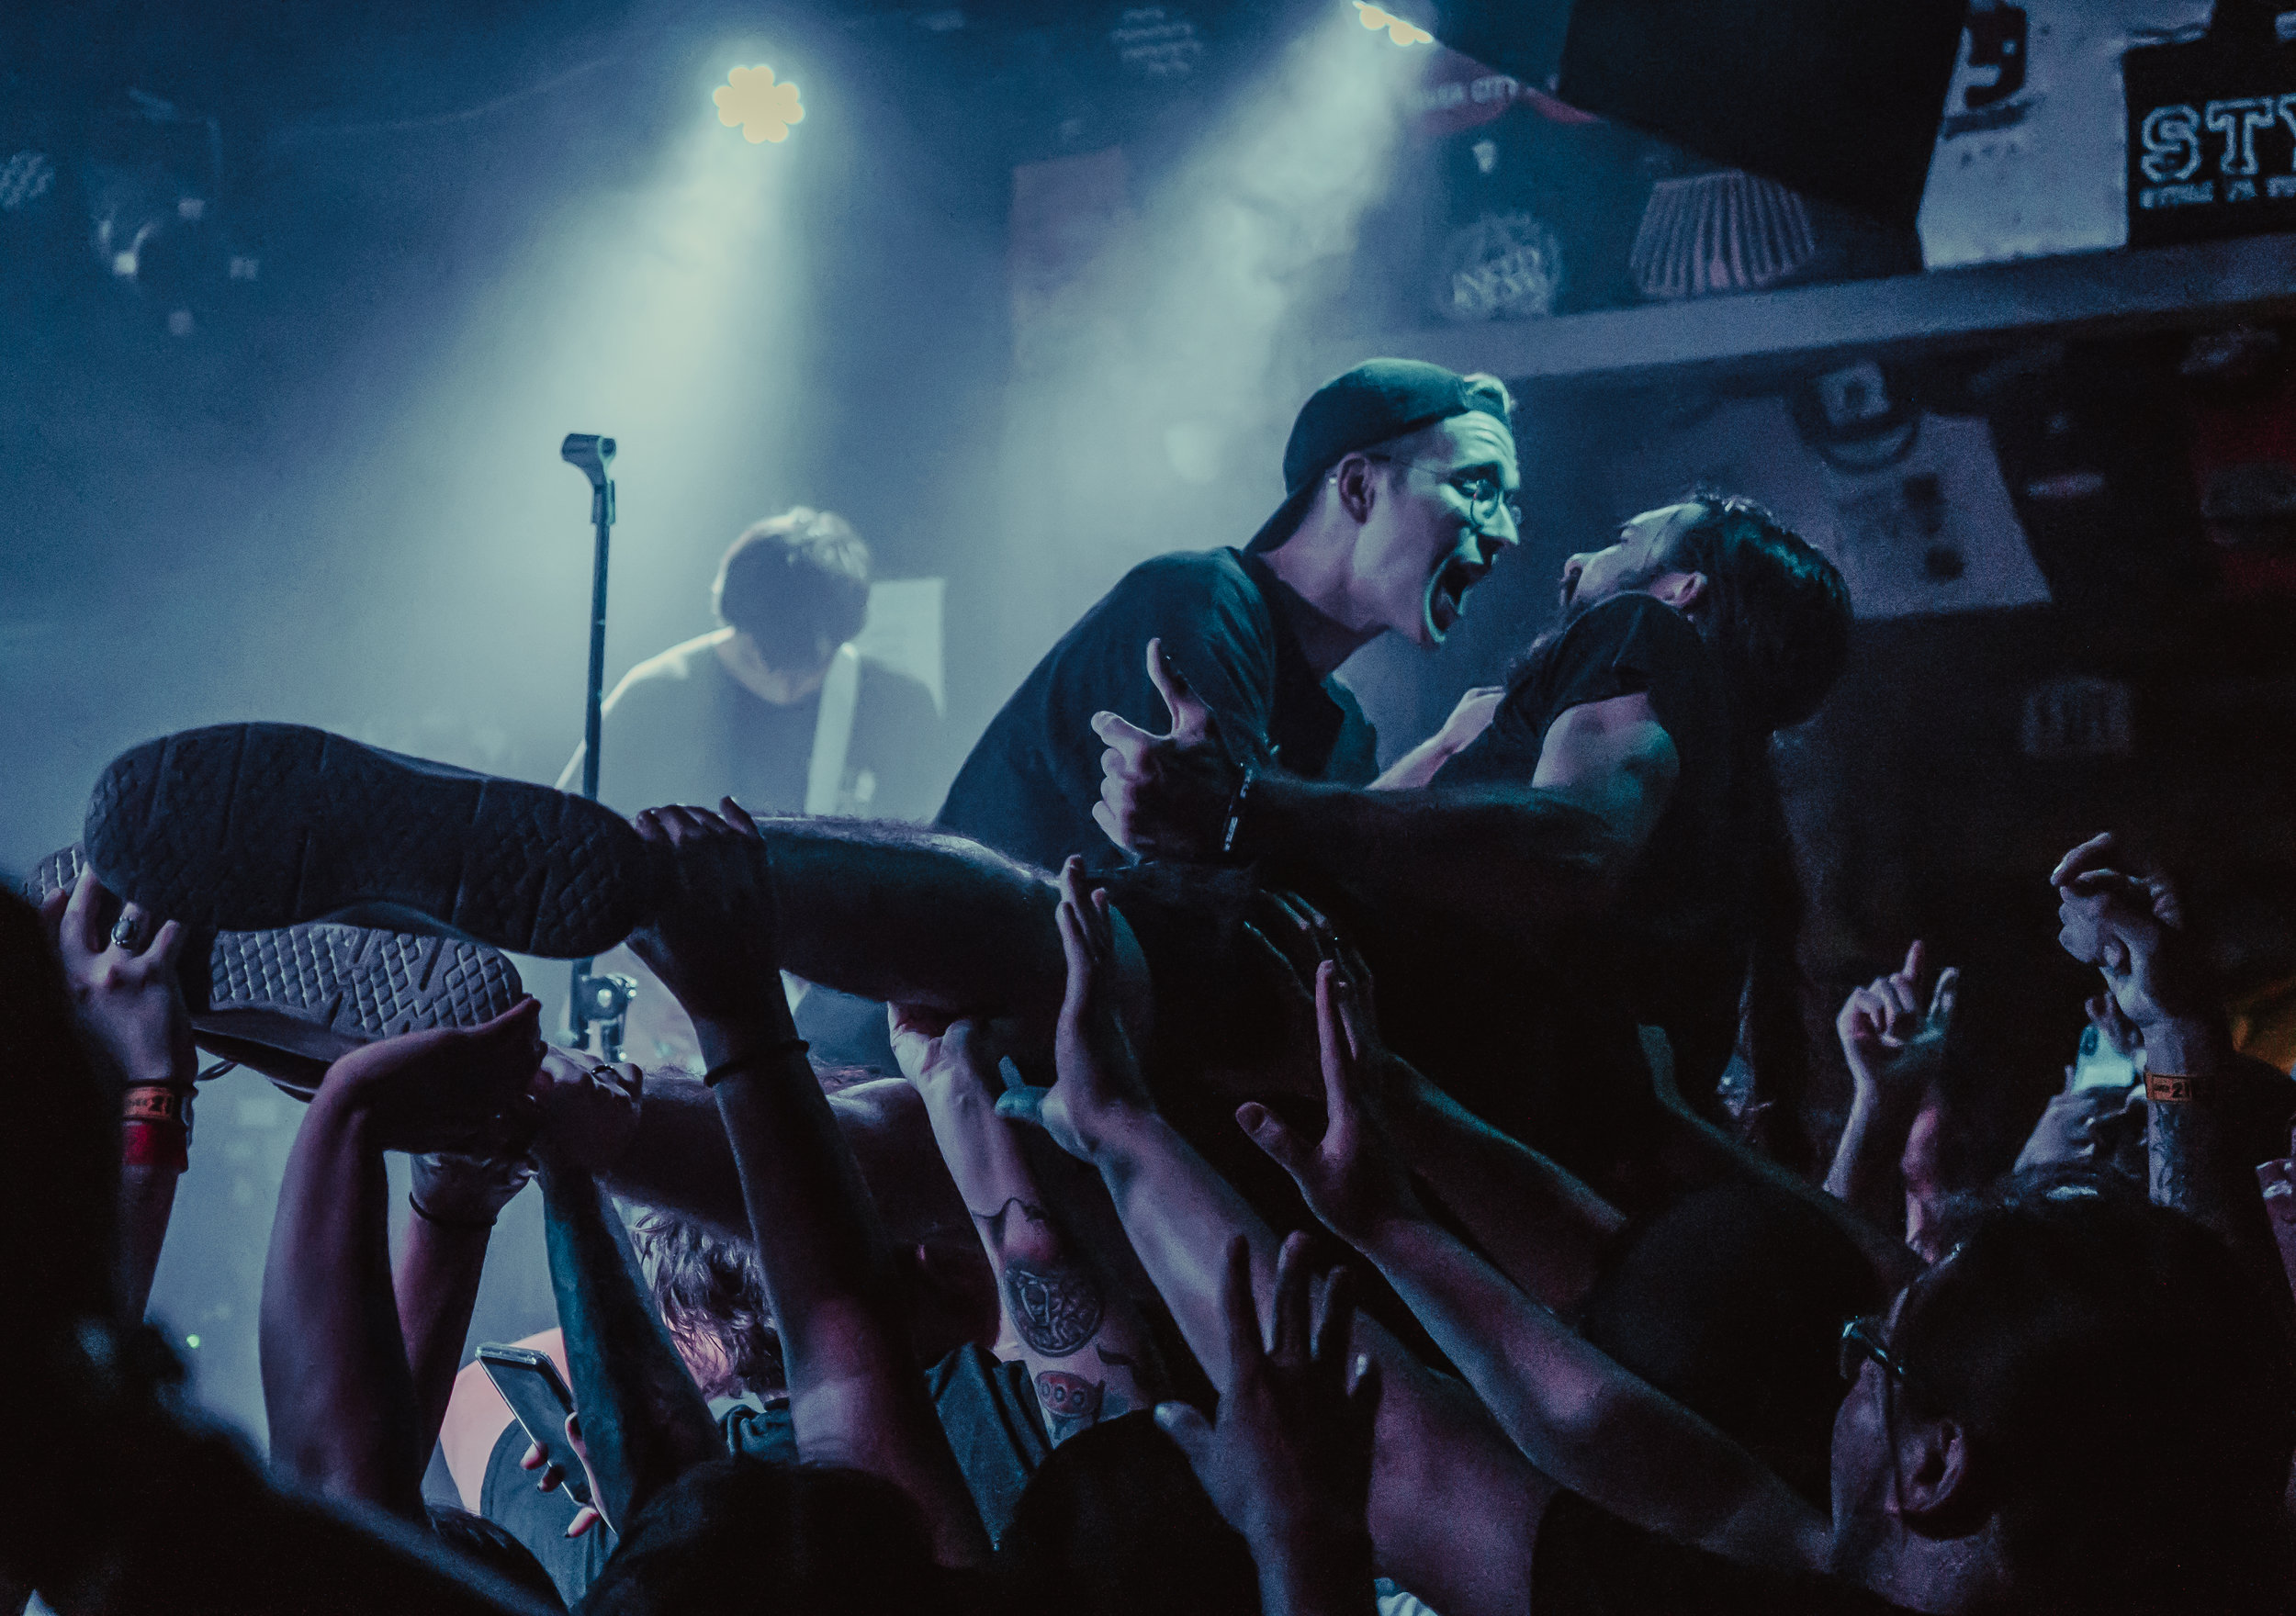 Show Review + Gallery + Live Video: Andy's Room - Anaheim